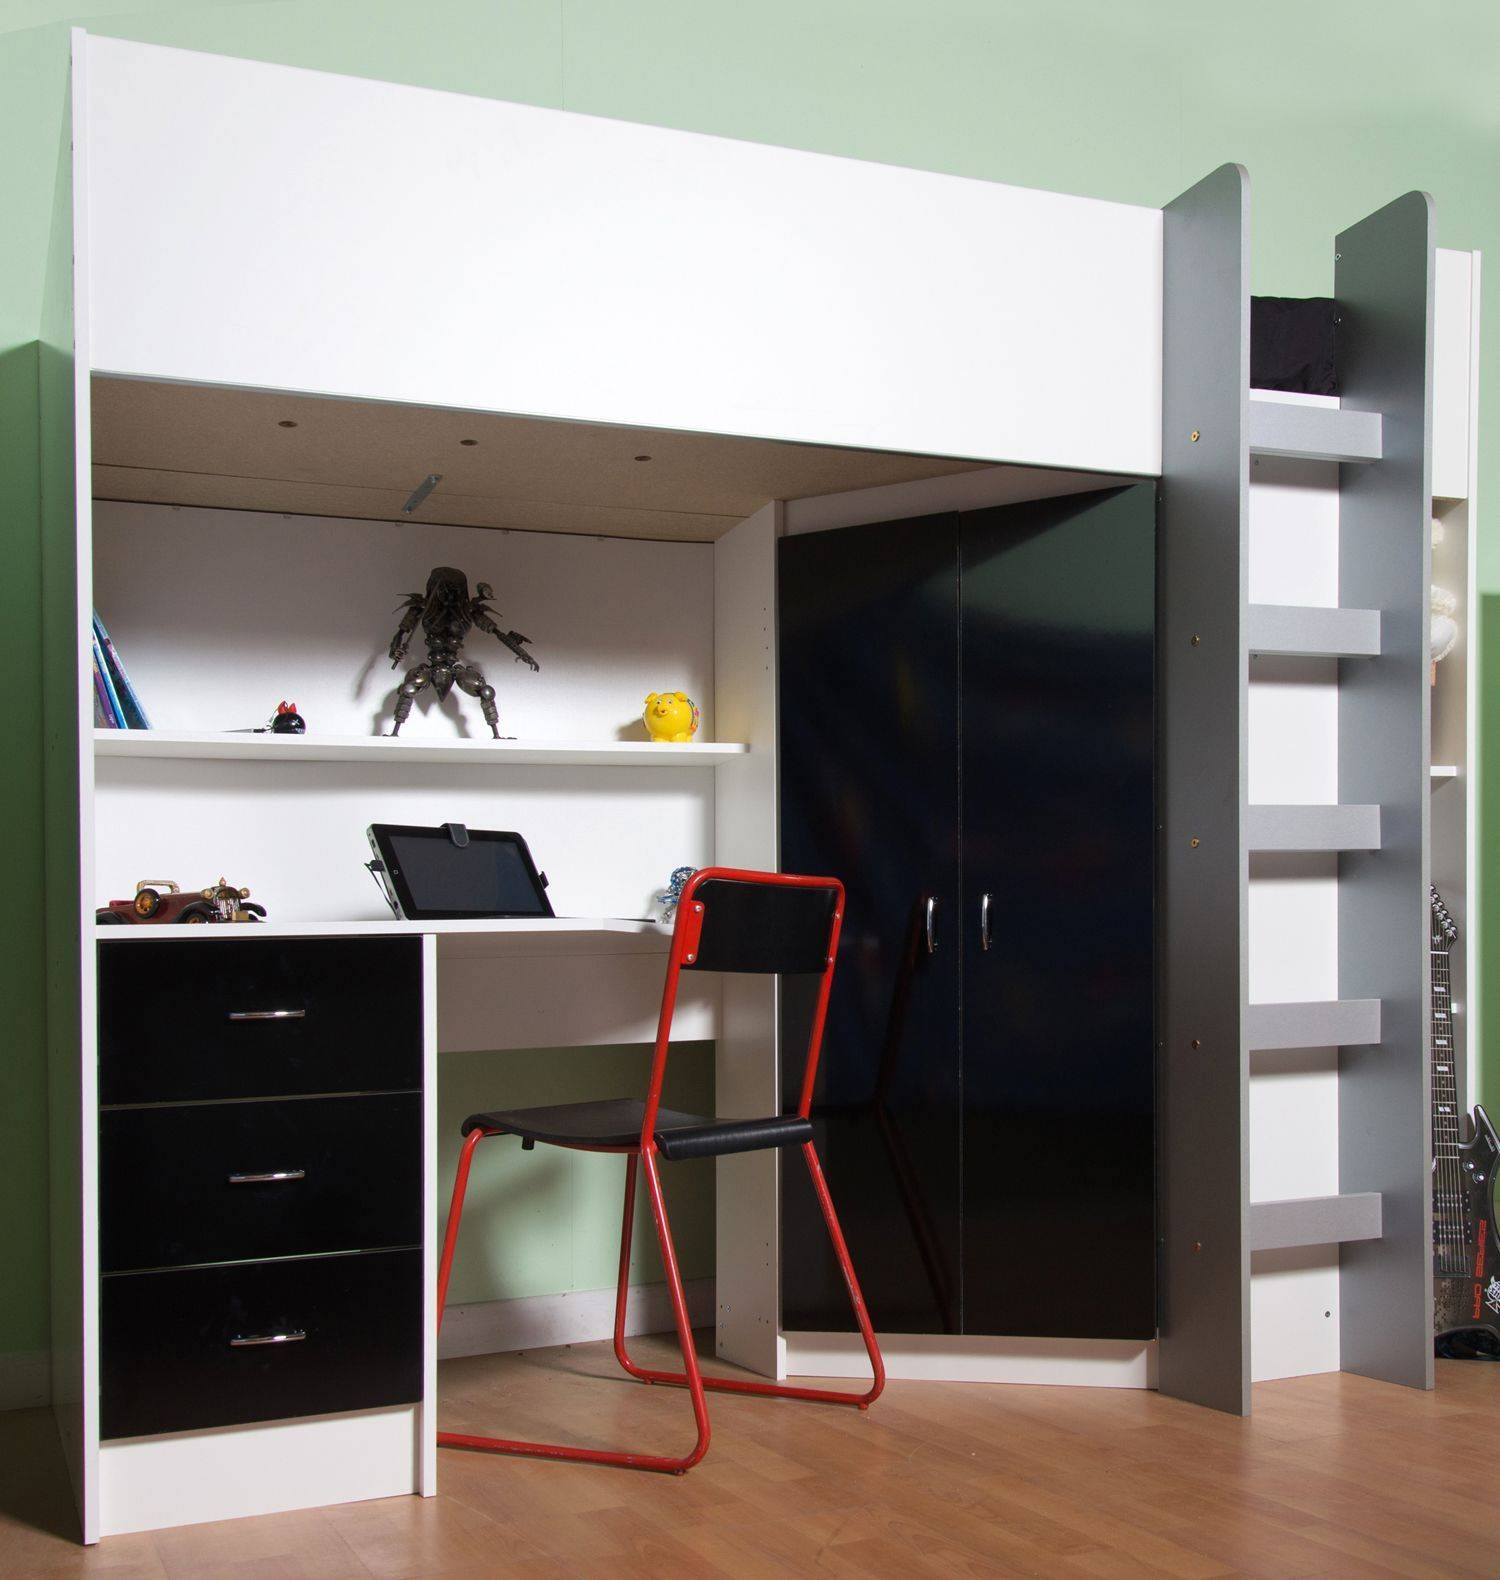 Ikea Bed Delivery High Sleeper Cabin With Desk And Wardrobe Also inside Kids Cabin Beds With Wardrobes (Image 8 of 15)